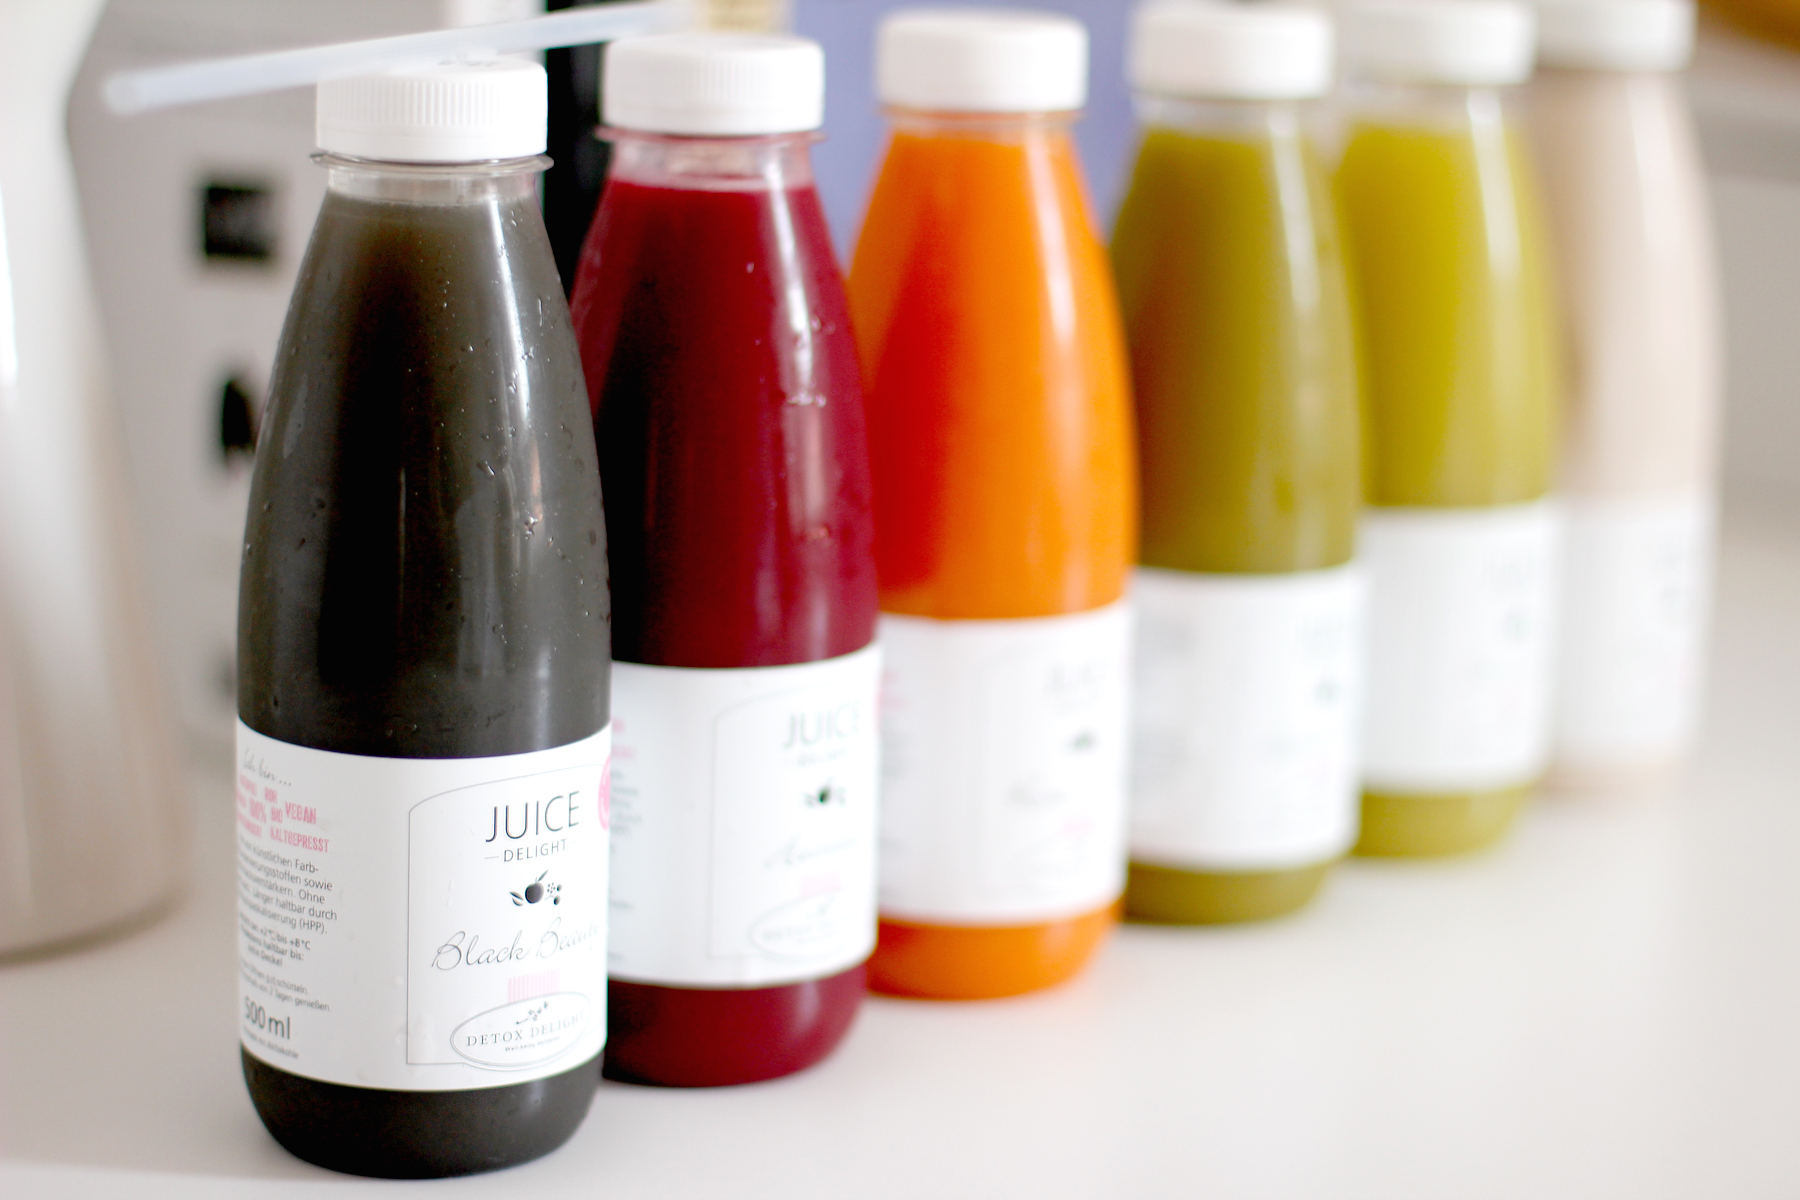 detox delight juice delight easy juice cleanse saftkur entgiften münchen kaltgepresst bio säfte saft cold pressed ricarda schernus cats & dogs lifestyle blog fashion blog 3